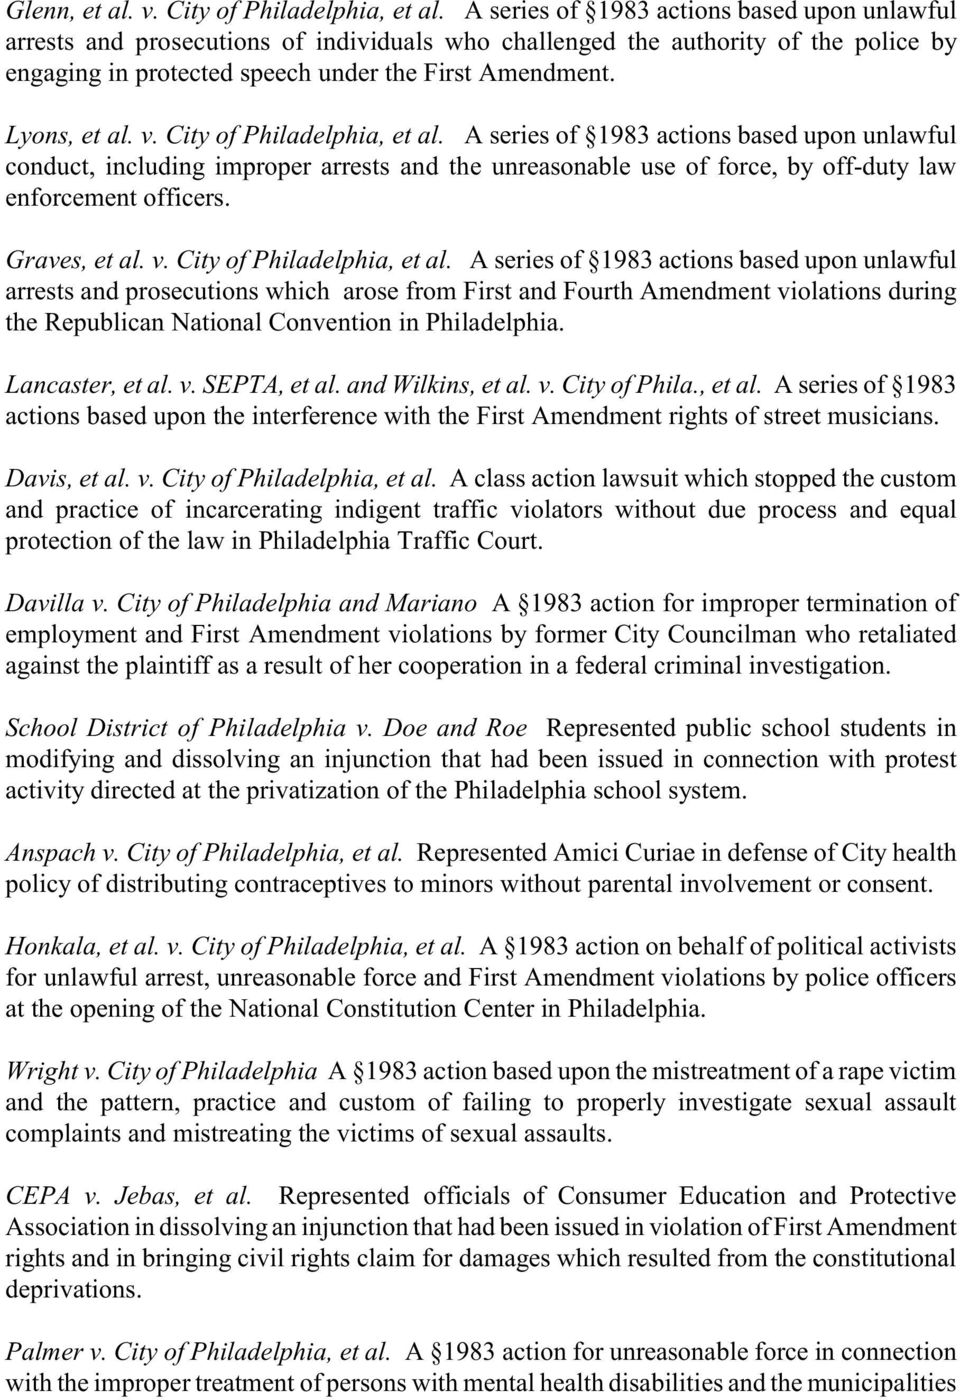 v. City of Philadelphia, et al. A series of 1983 actions based upon unlawful conduct, including improper arrests and the unreasonable use of force, by off-duty law enforcement officers. Graves, et al.